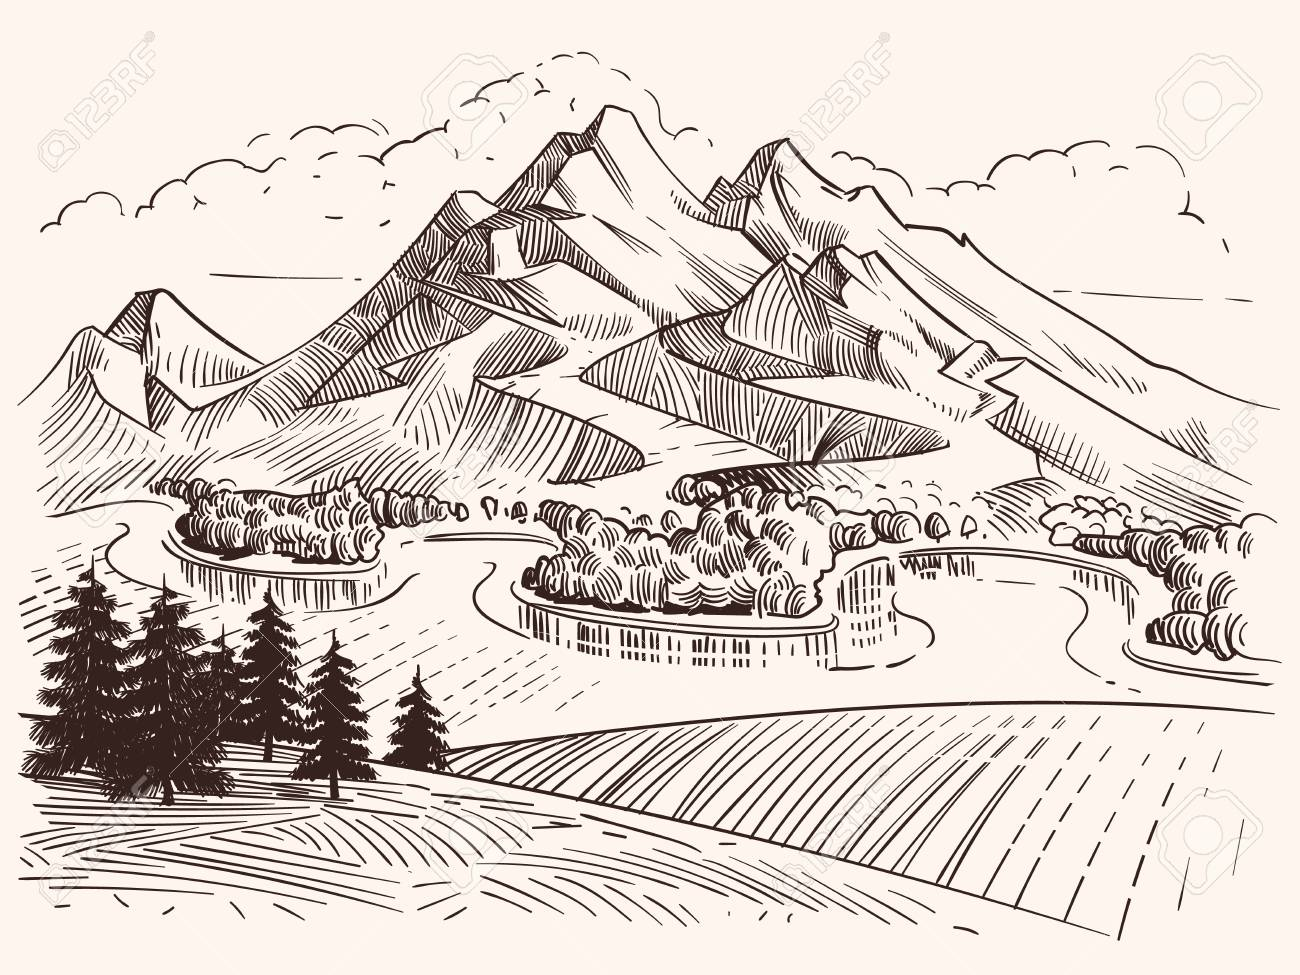 Pencil drawing mountain landscape cartoon sketch mountains and fir trees vector illustration landscape sketch